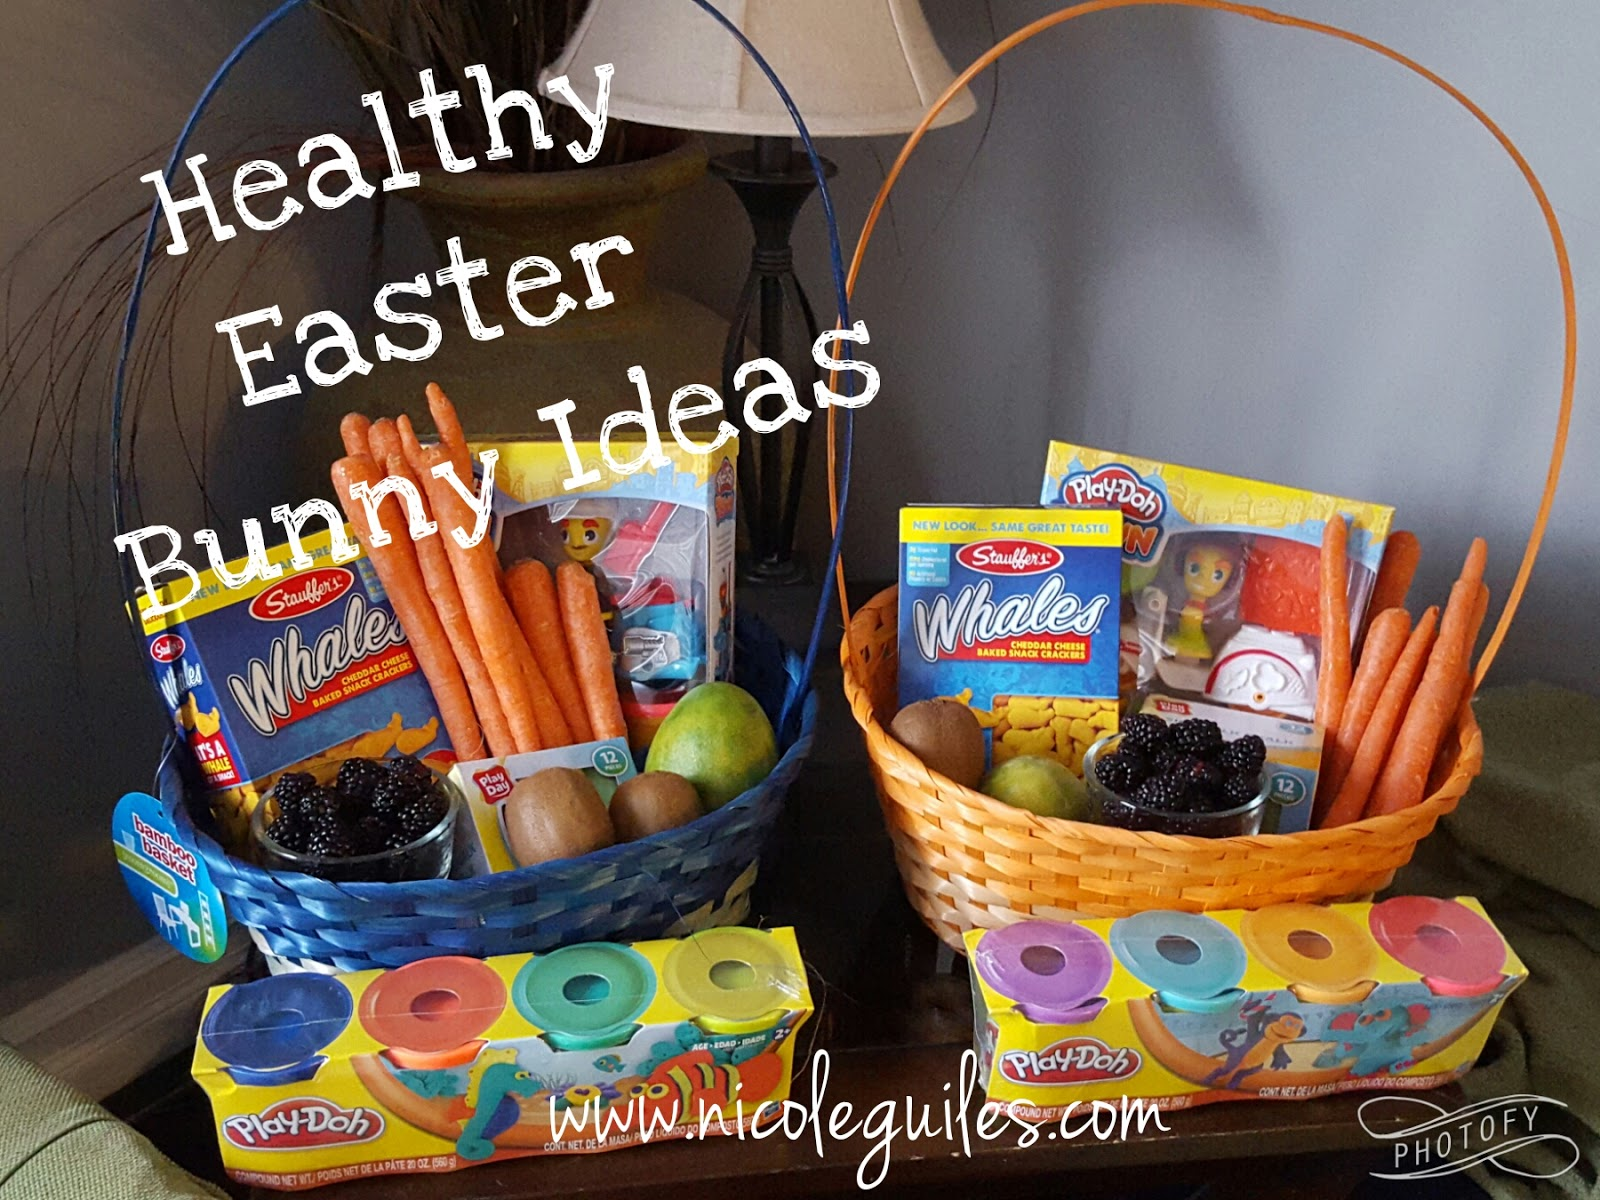 Nicole guiles march 2016 healthy easter baskets negle Image collections